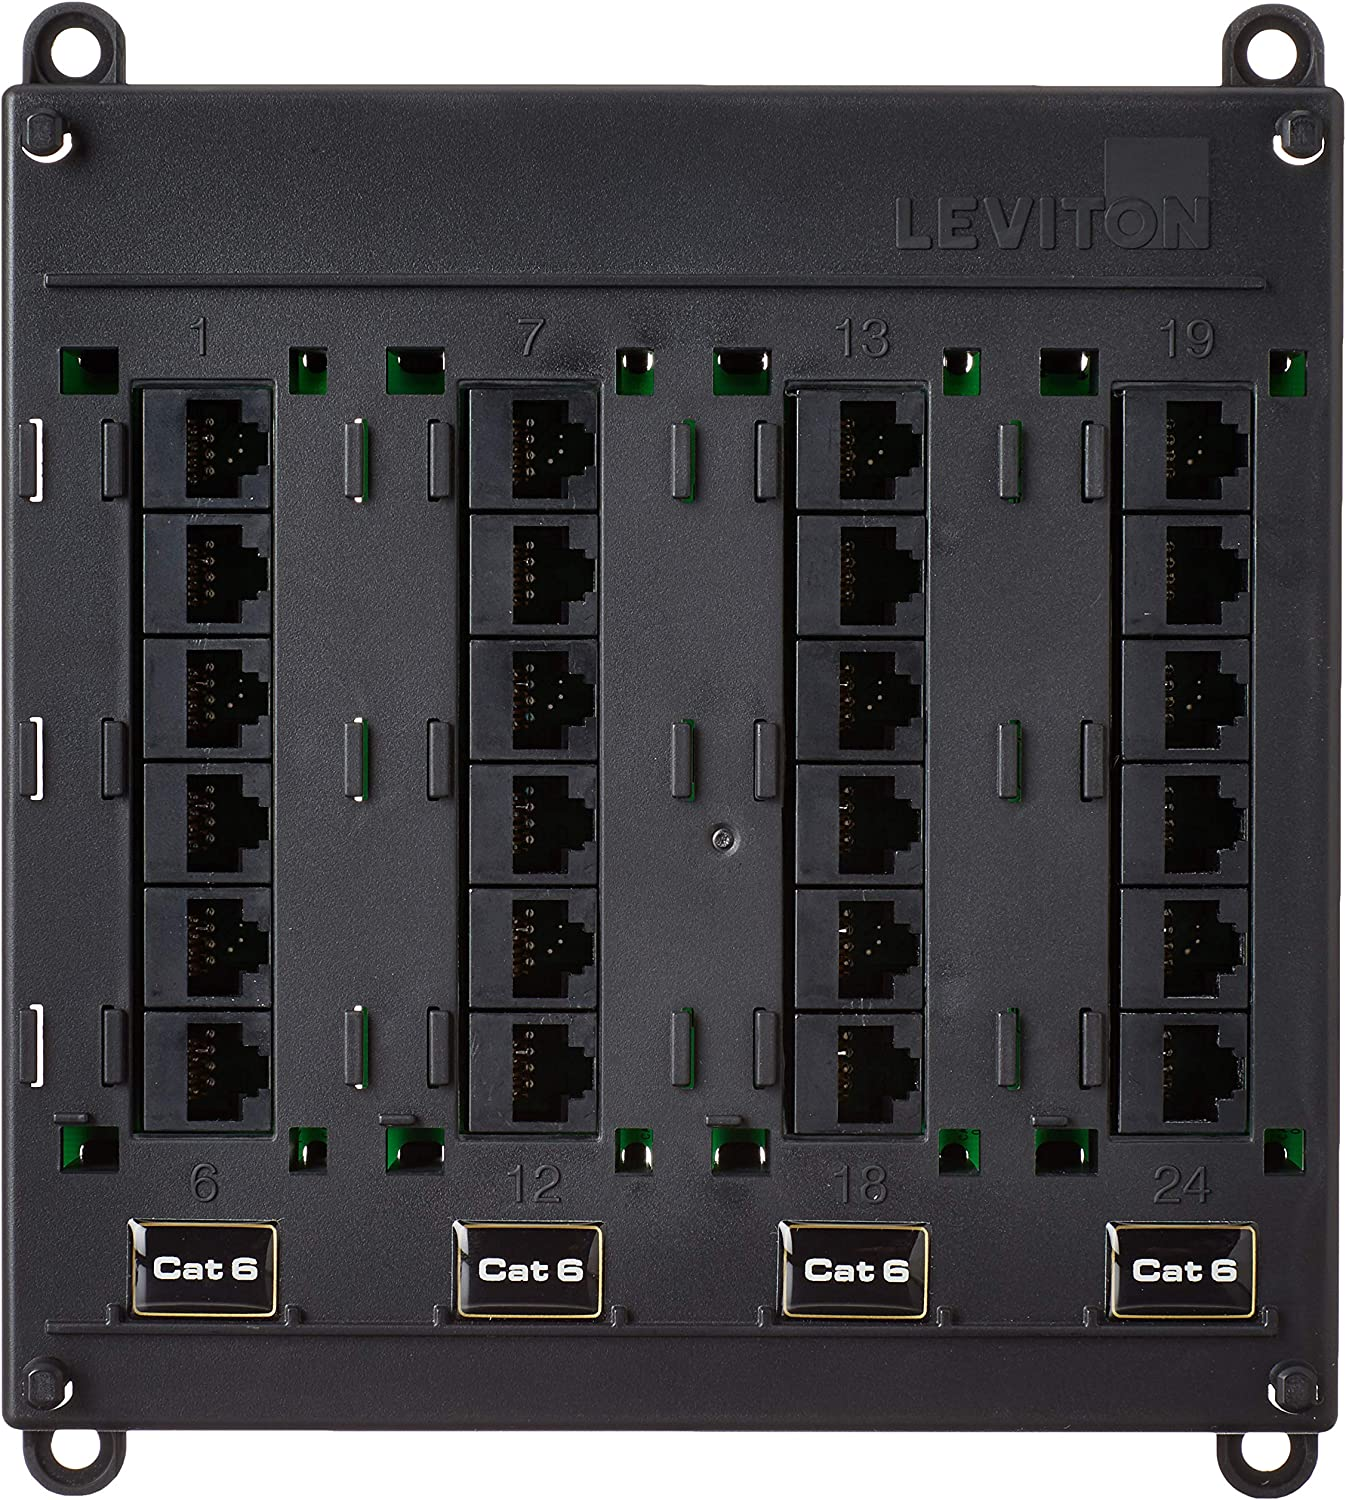 Leviton 476TM-624 Twist and Mount Patch Panel, 24 CAT 6 Ports